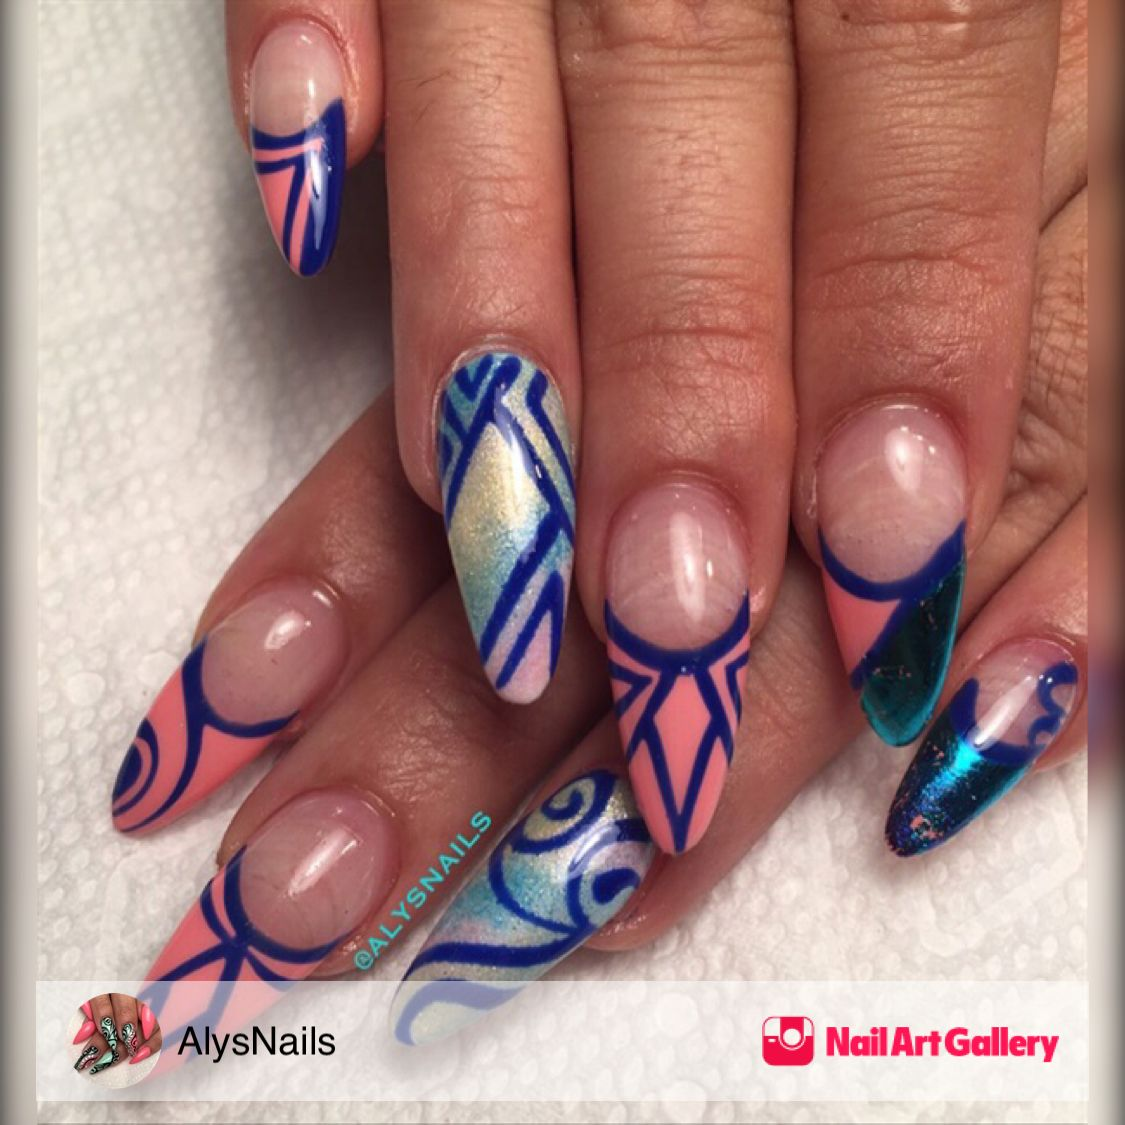 Pigments And Gels by AlysNails via Nail Art Gallery #nailartgallery ...